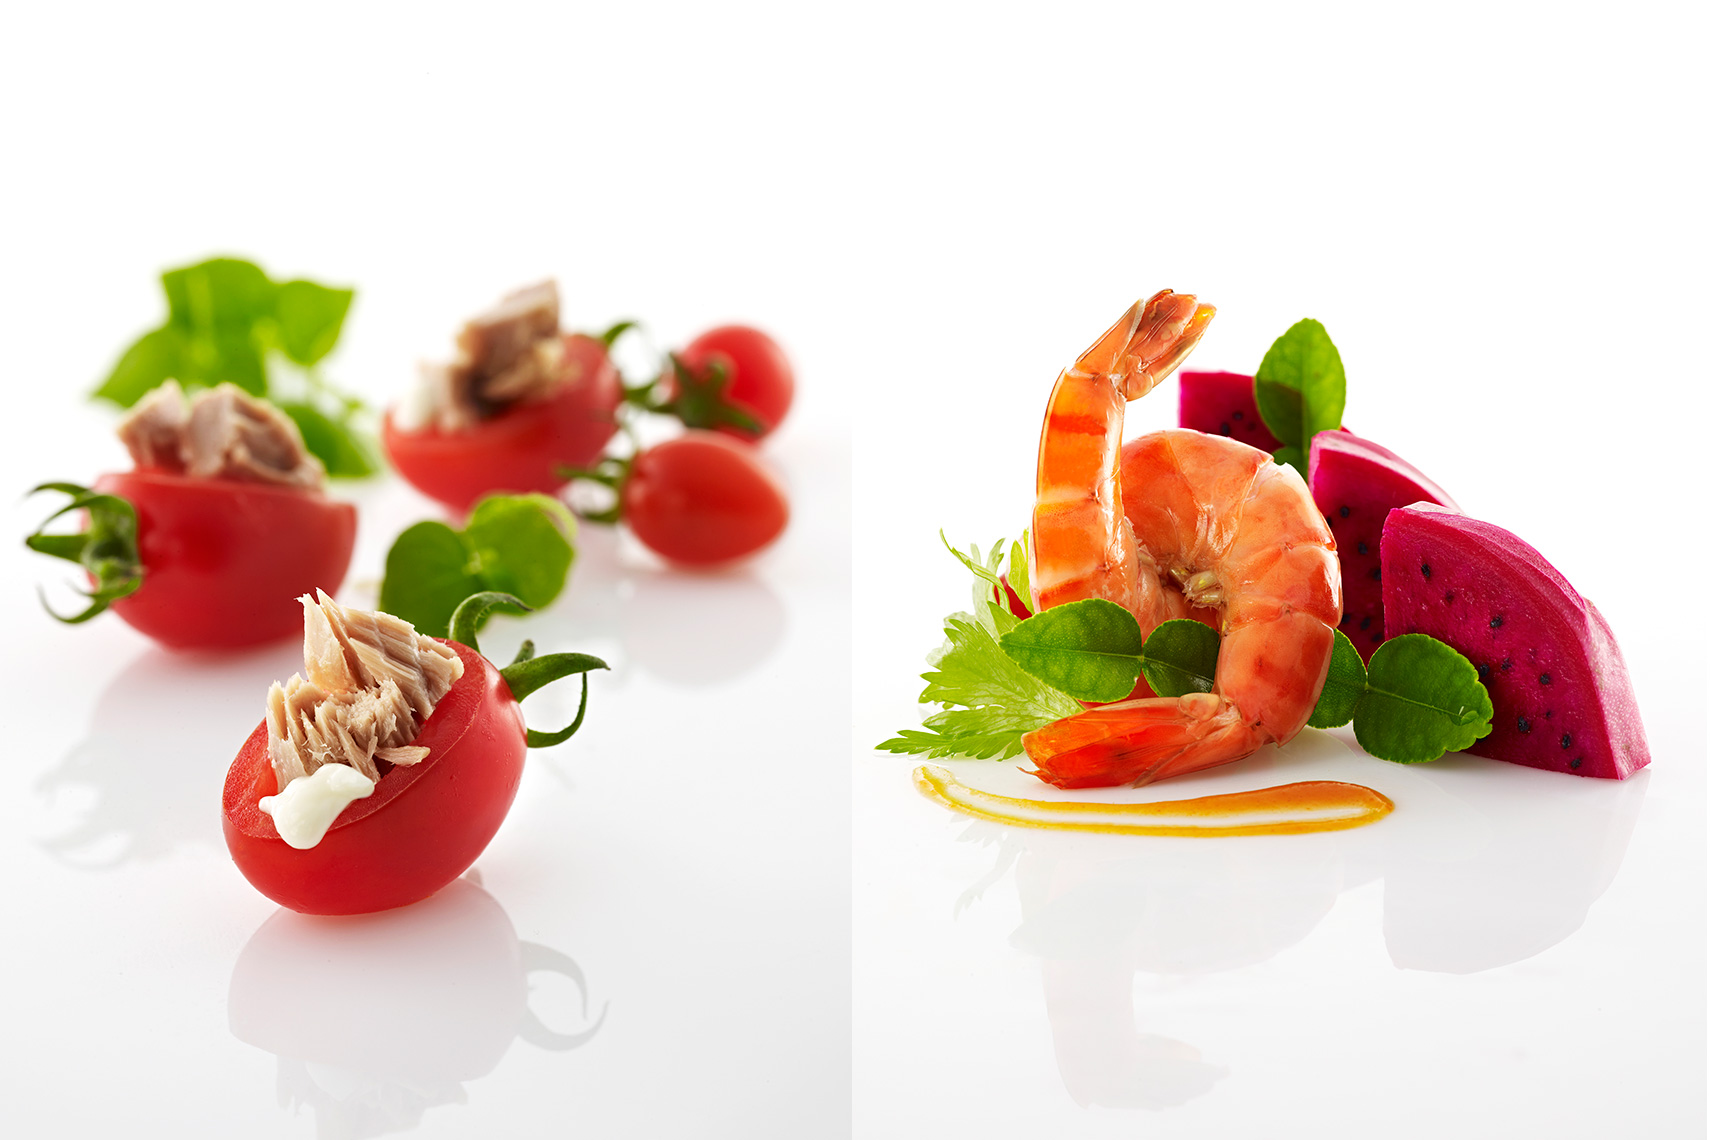 F056_food_shot_salmon_tomato_shrimp.jpg